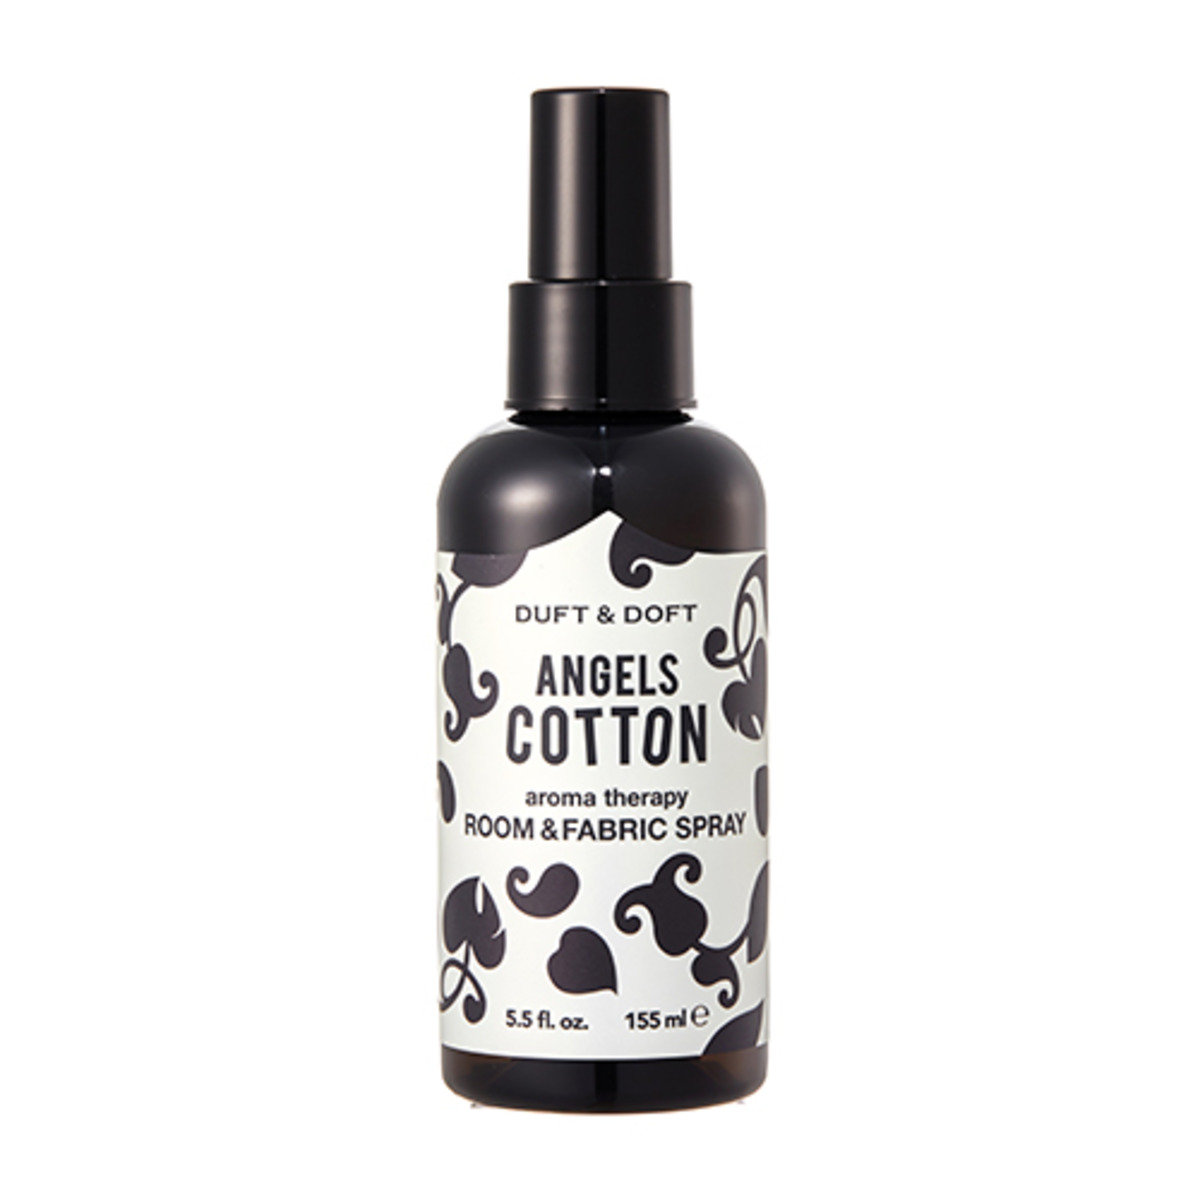 Angels Cotton 室內香薰噴霧